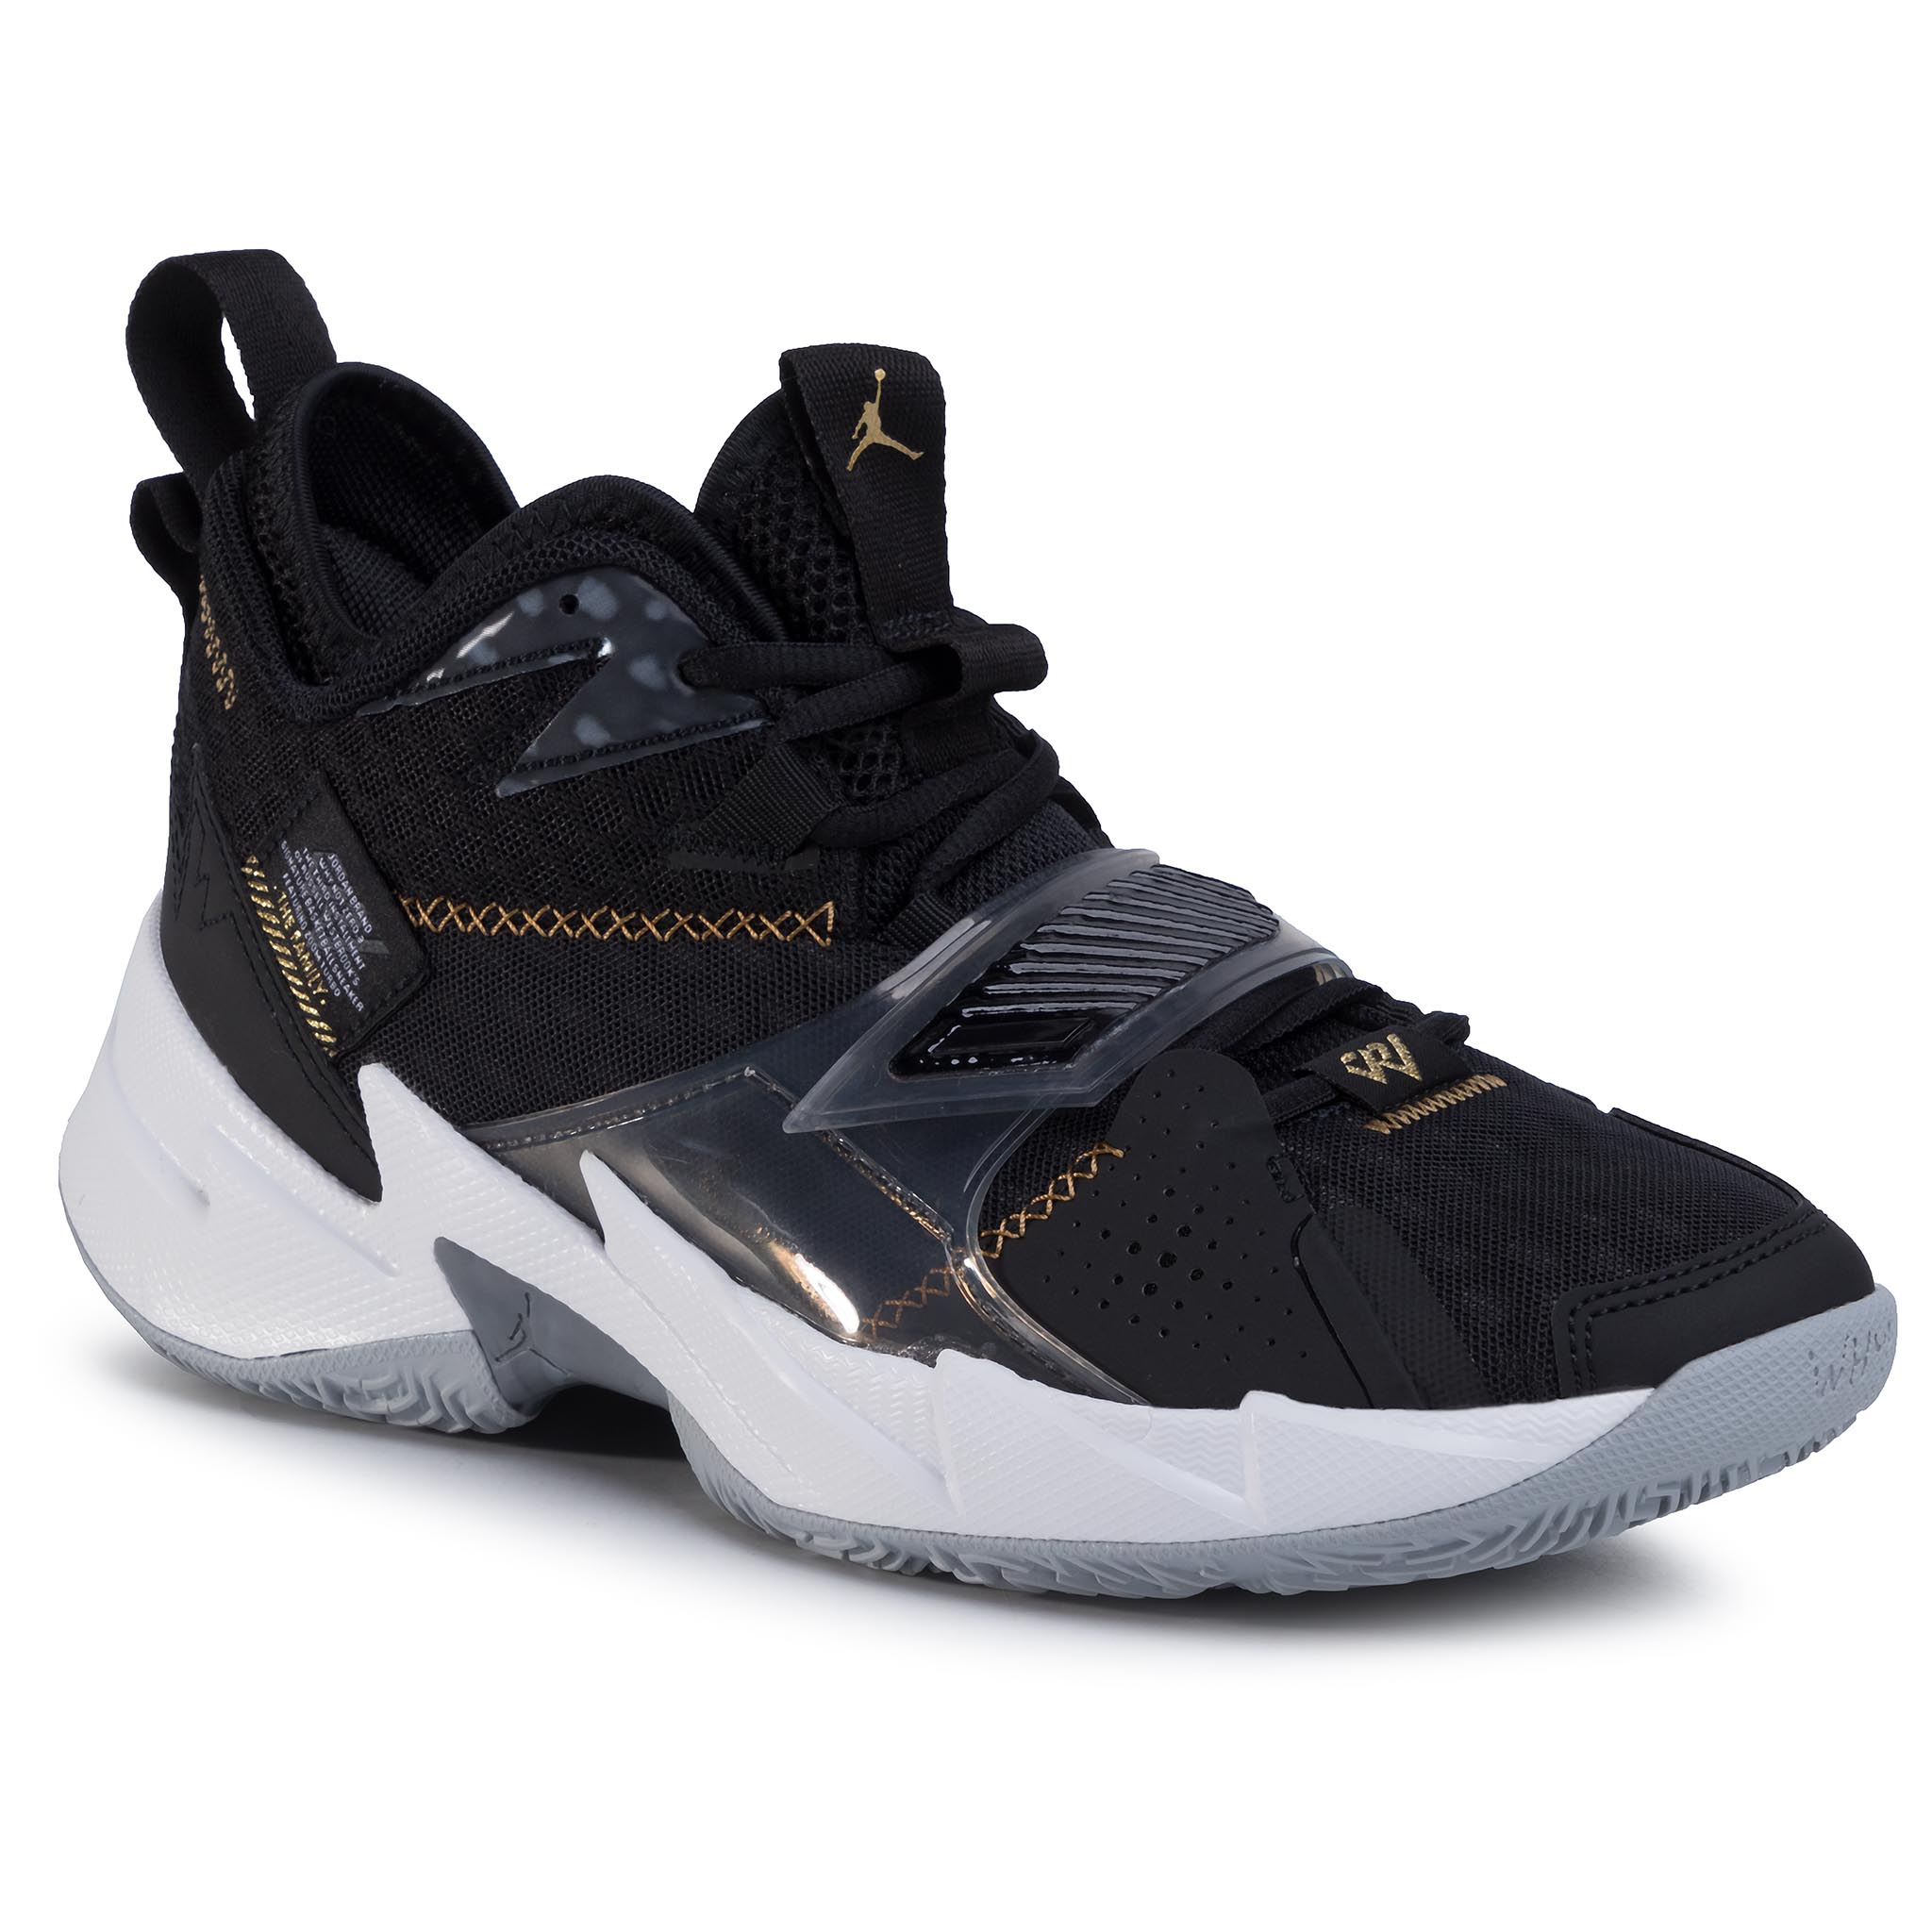 Pantofi Nike - Why Not Zero.3 Cd3003 001 Black/Metallic Gold/White imagine